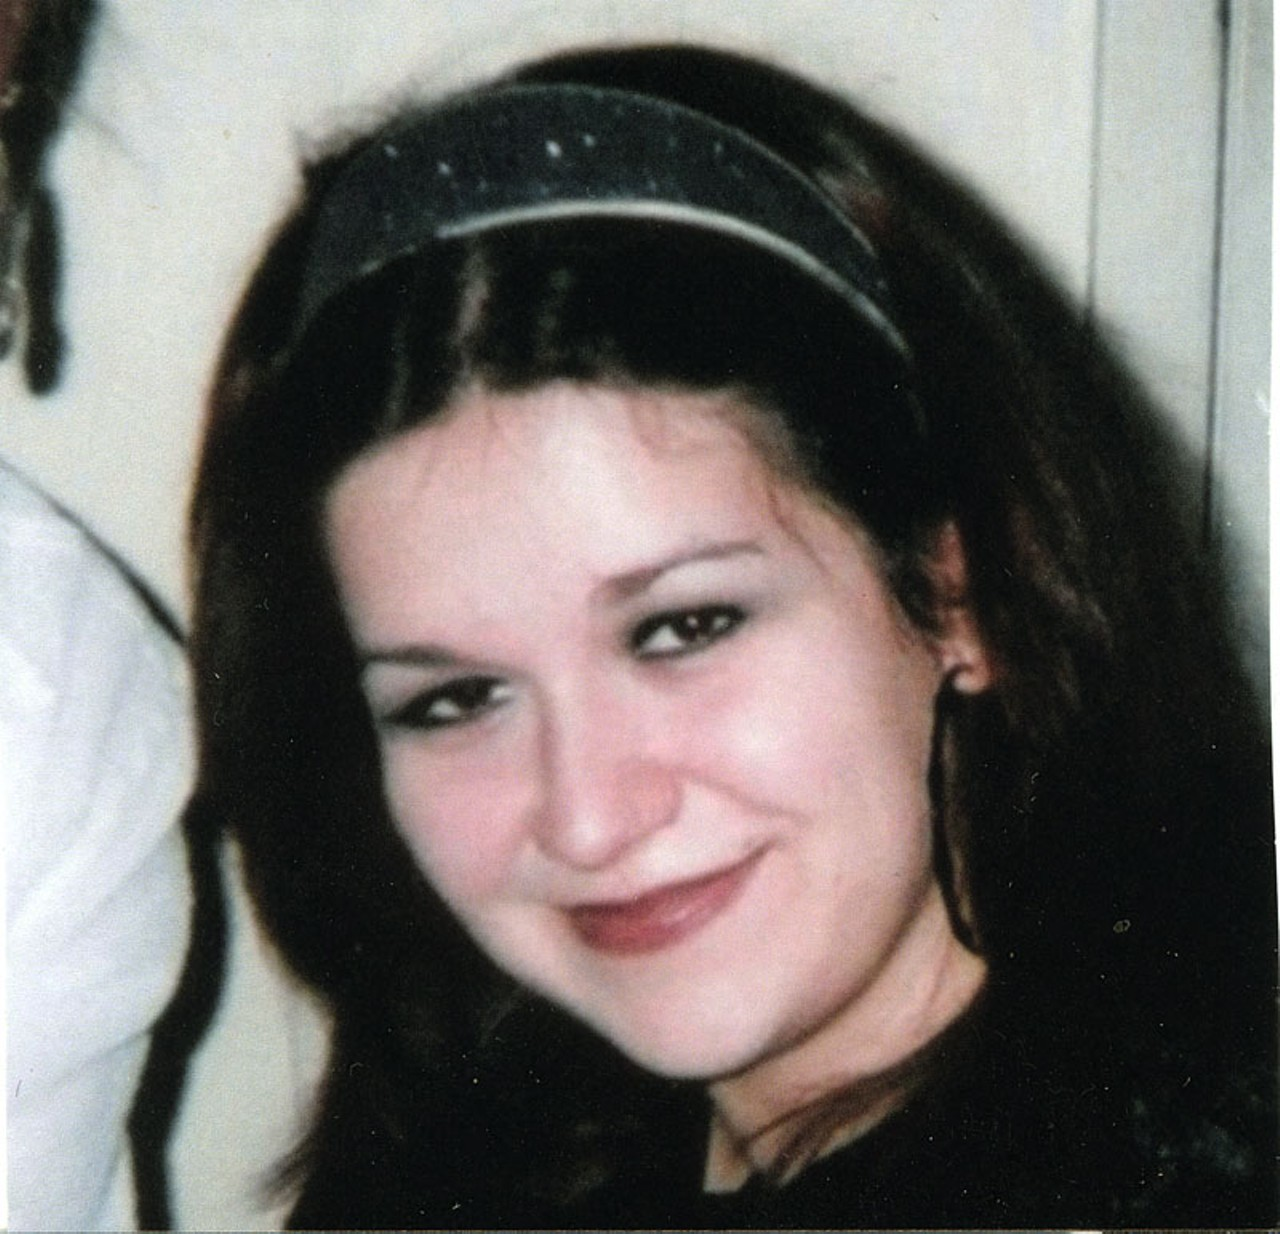 Angela Haze angela halliday was a junkie. does that make her a murderer